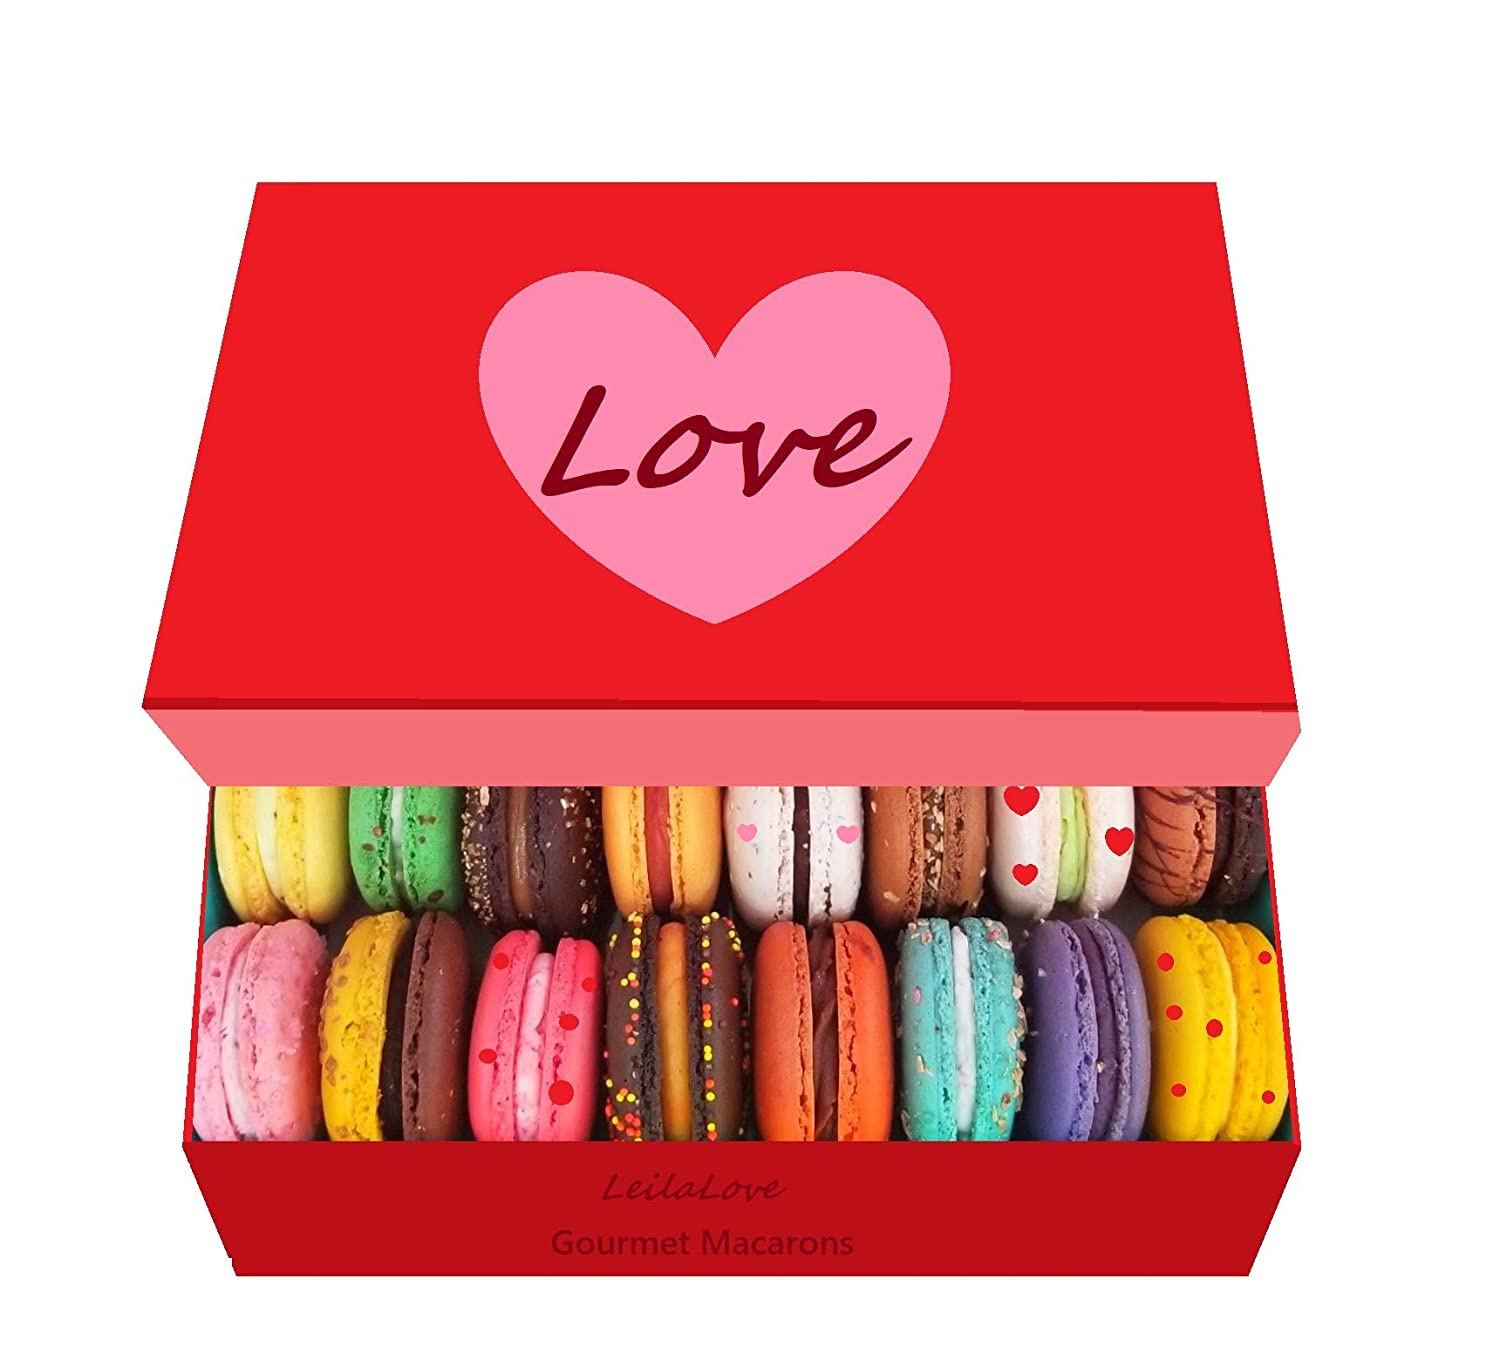 LeilaLove Macarons special 16 flavor collection - box may vary in colors